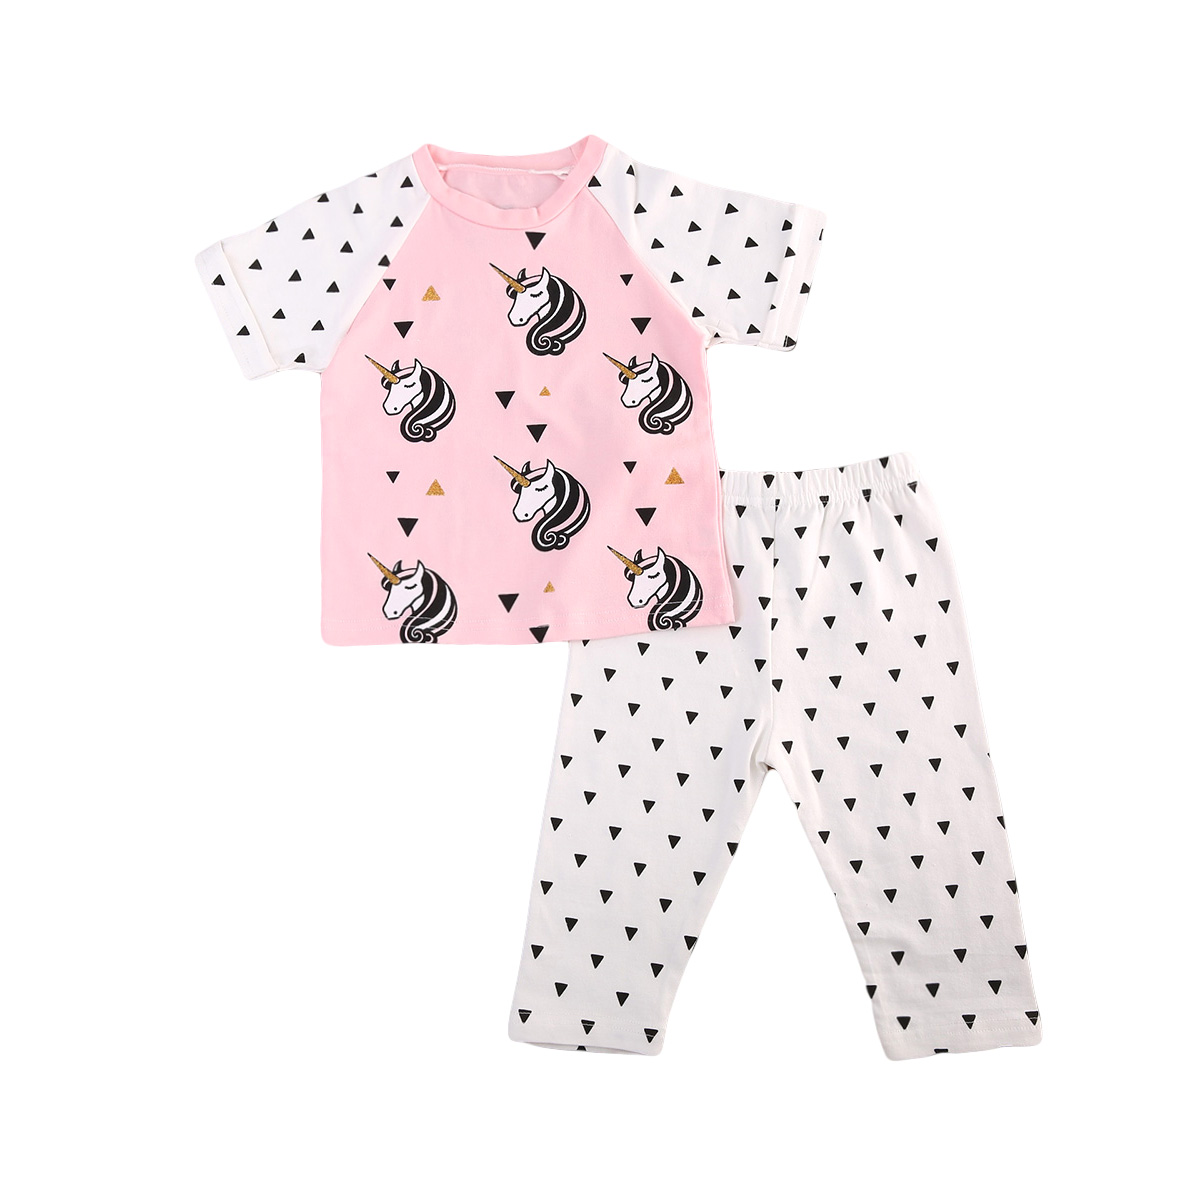 Cute Toddler Infant Baby Girls Unicorn Tops Short Sleeve T-shirt Pants Legging Outfits Set Summer Autumn Cotton Clothes 2pcs 2pcs set autumn cartoon rabbit toddler baby kid girls long sleeve suit t shirt tops pants costume tracksuit outfits 1 5t